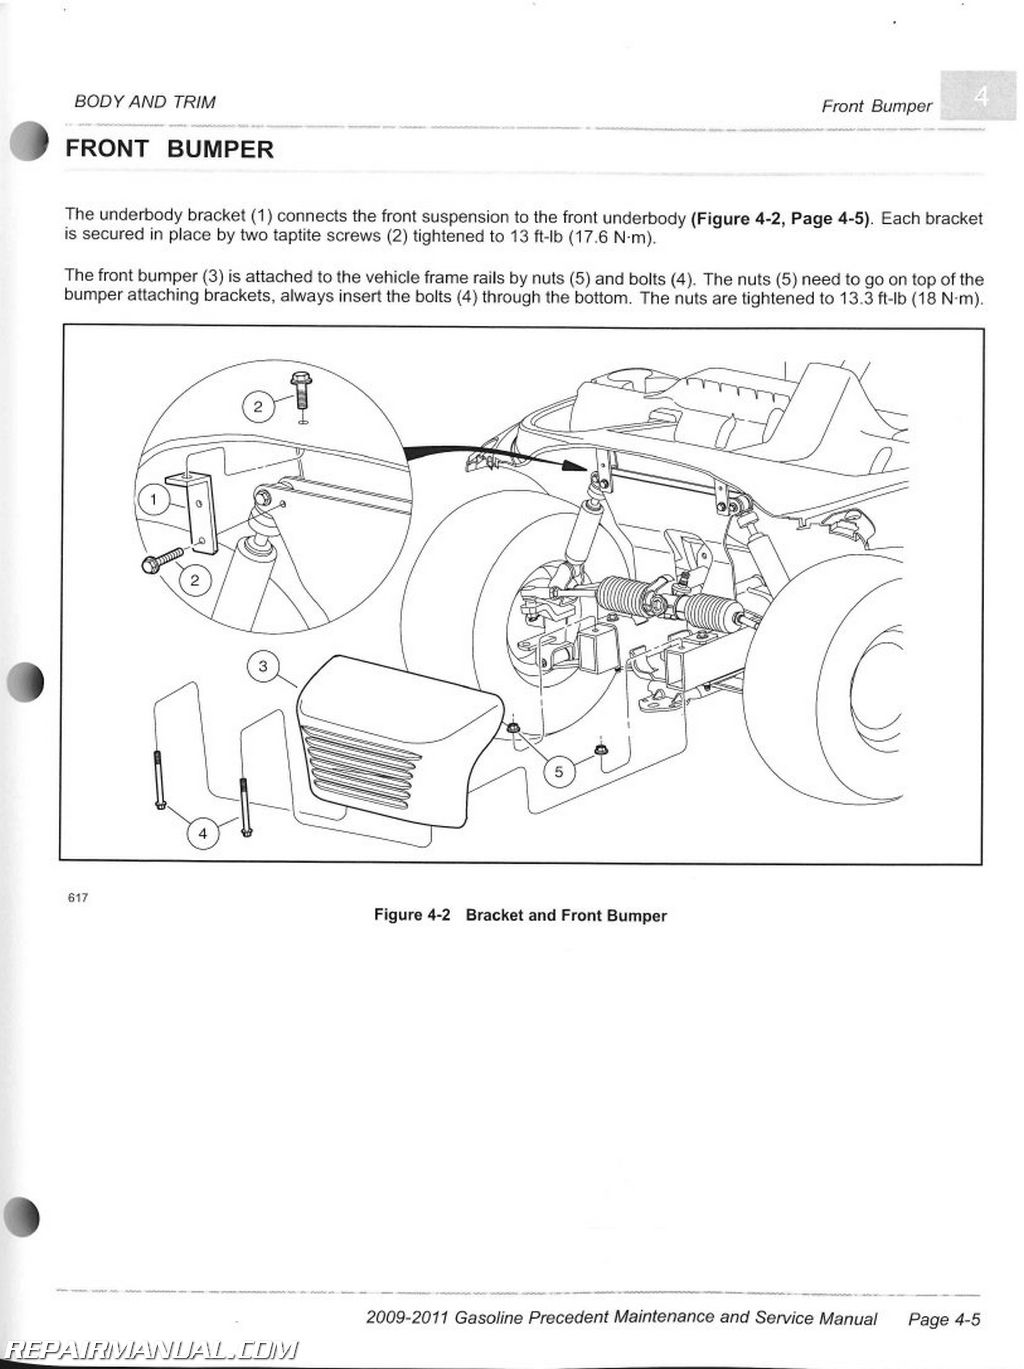 wiring harness in cars with Official 2009 2011 Club Car Gasoline Precedent Maintenance And Service Manual 103472702 on Help Locating Shift Solenoid Please 2704856 moreover T22903794 89 ford ranger push button 4x4 will not as well Lb7 Cooling System Diagram moreover 5f7zc 1957 Chevy Light Switch Power One Spade Tail Lights as well Discussion T2950 ds616402.